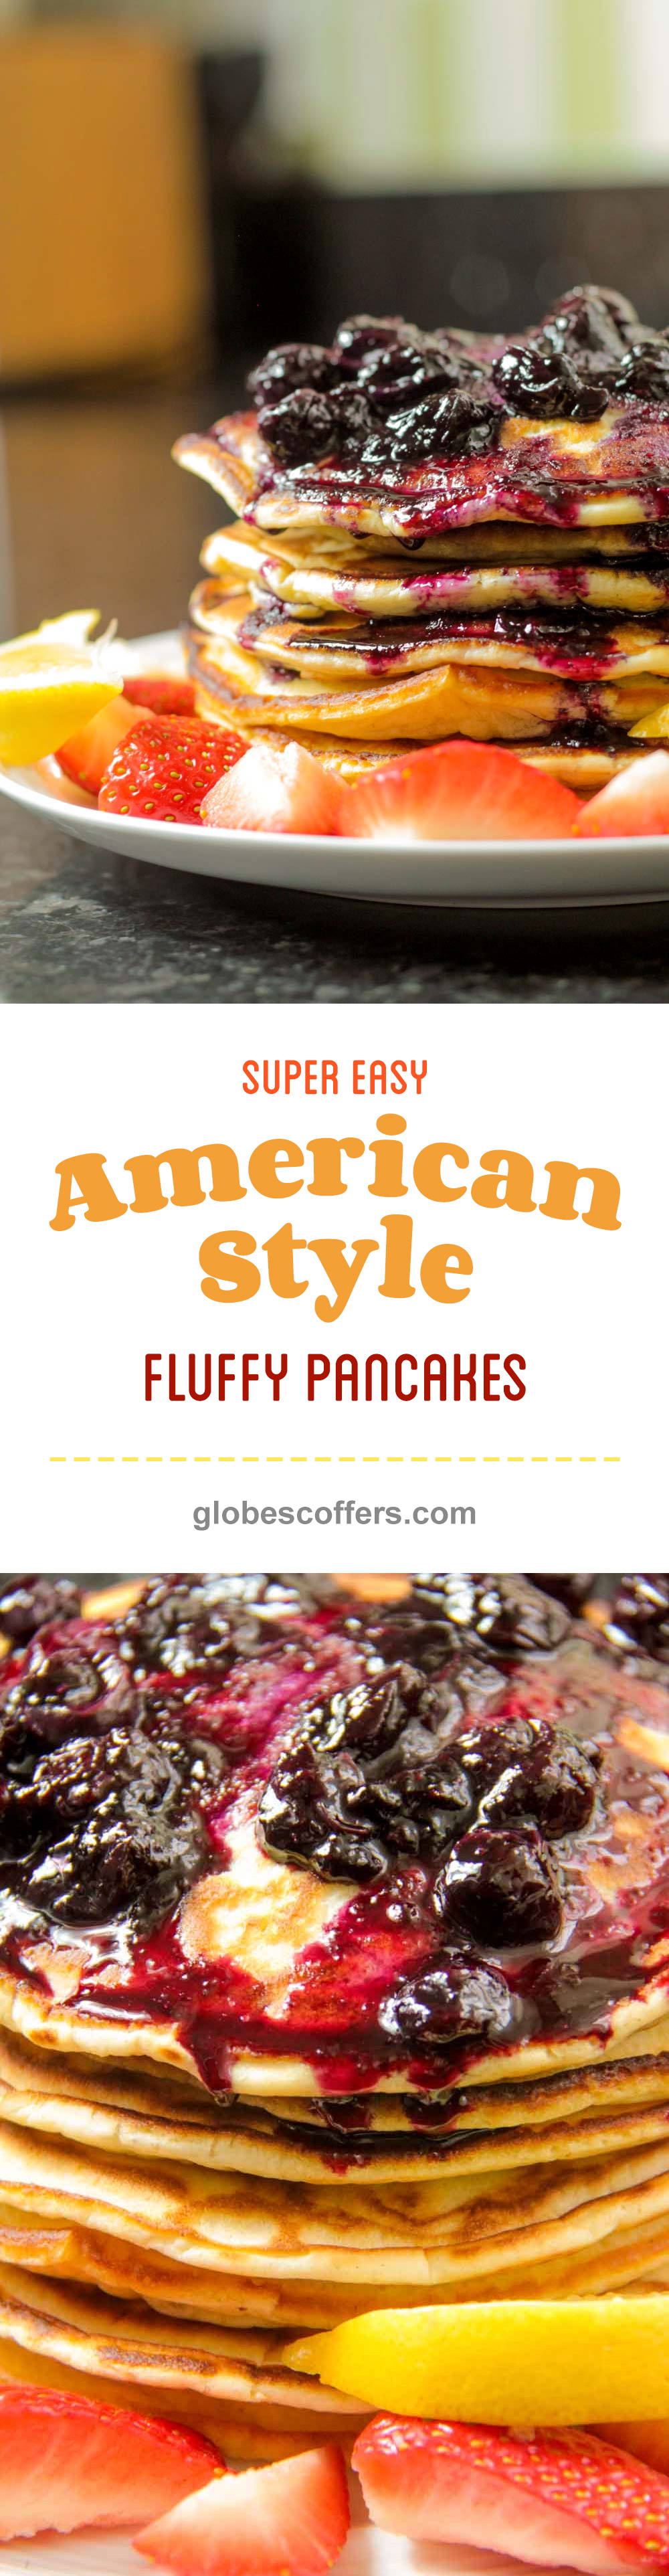 Super easy american style fluffy pancakes recipe globe scoffers 0shares forumfinder Images